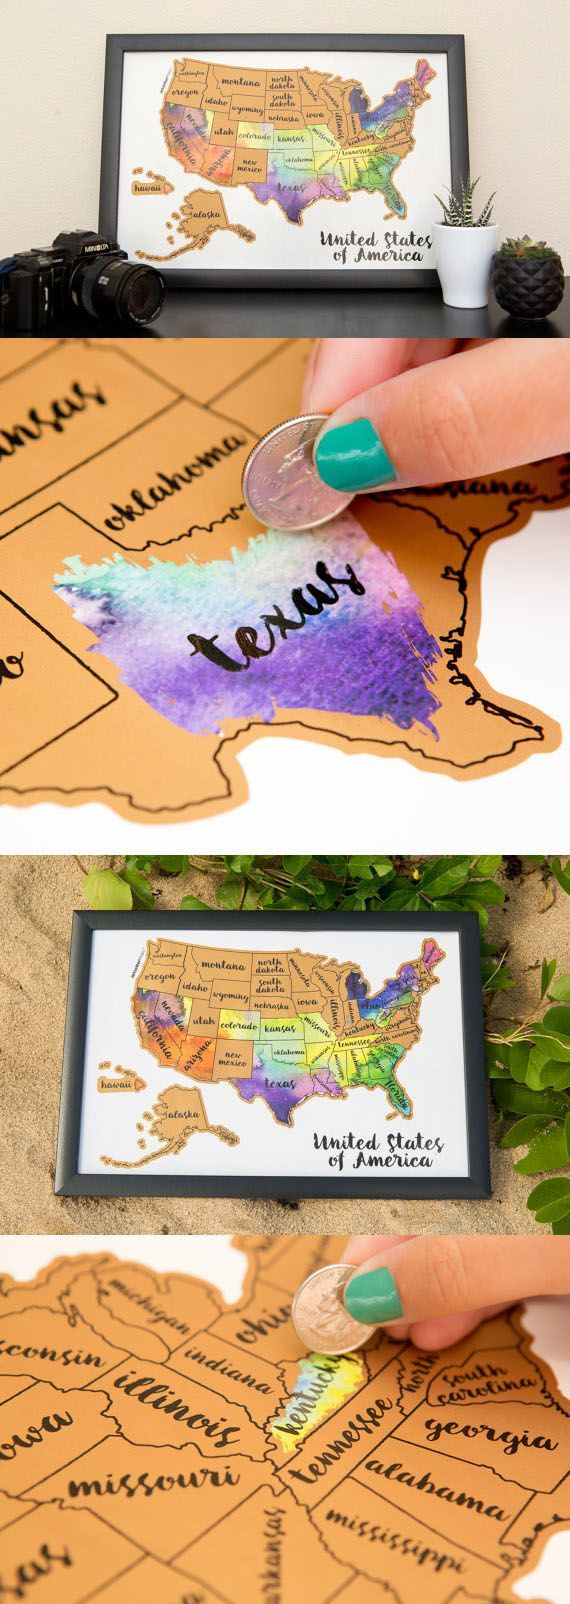 Best United States Map Ideas On Pinterest Map Of Usa Usa - Map of the usa states labeled